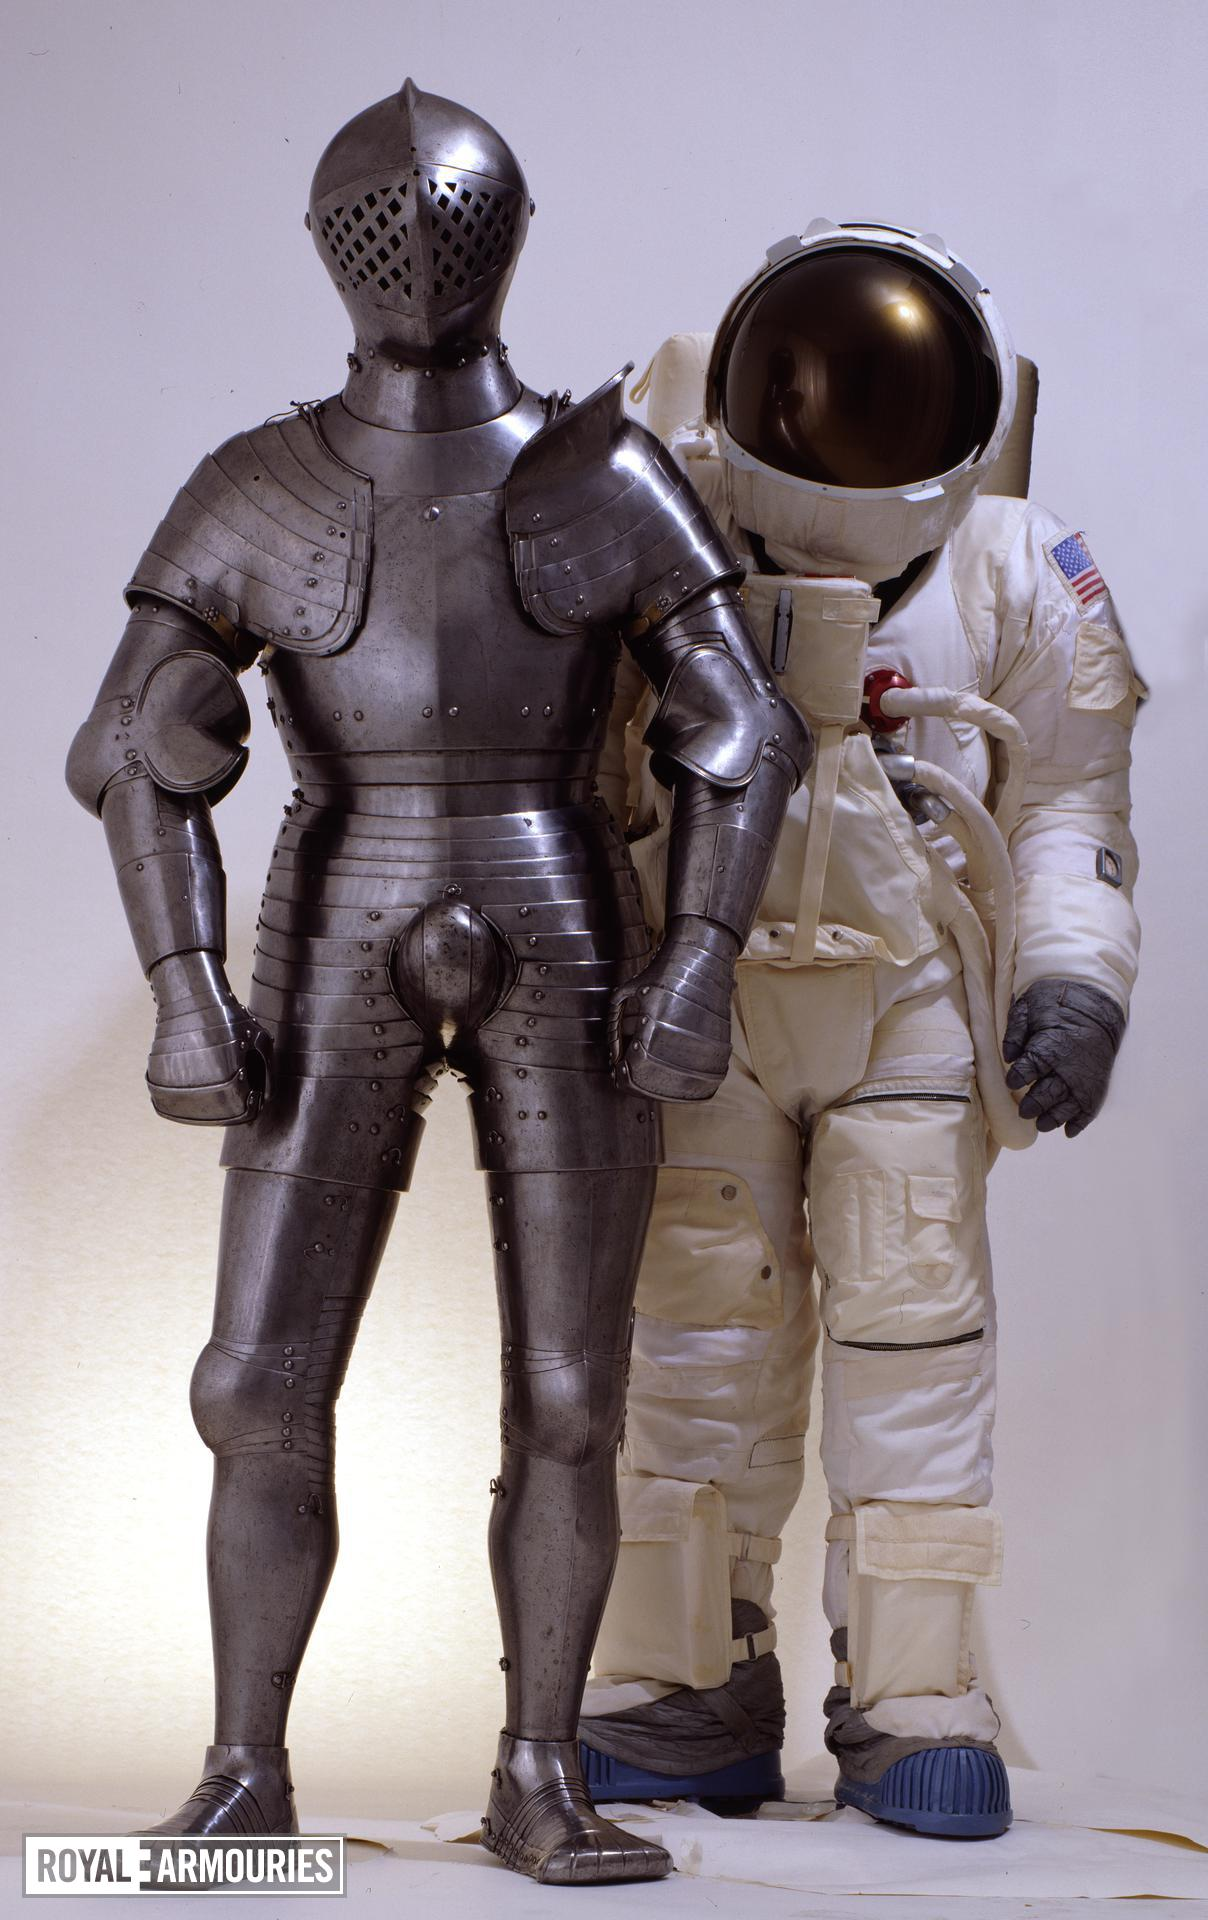 NASA spacesuit with the foot combat armour of Henry VIII (II.6)